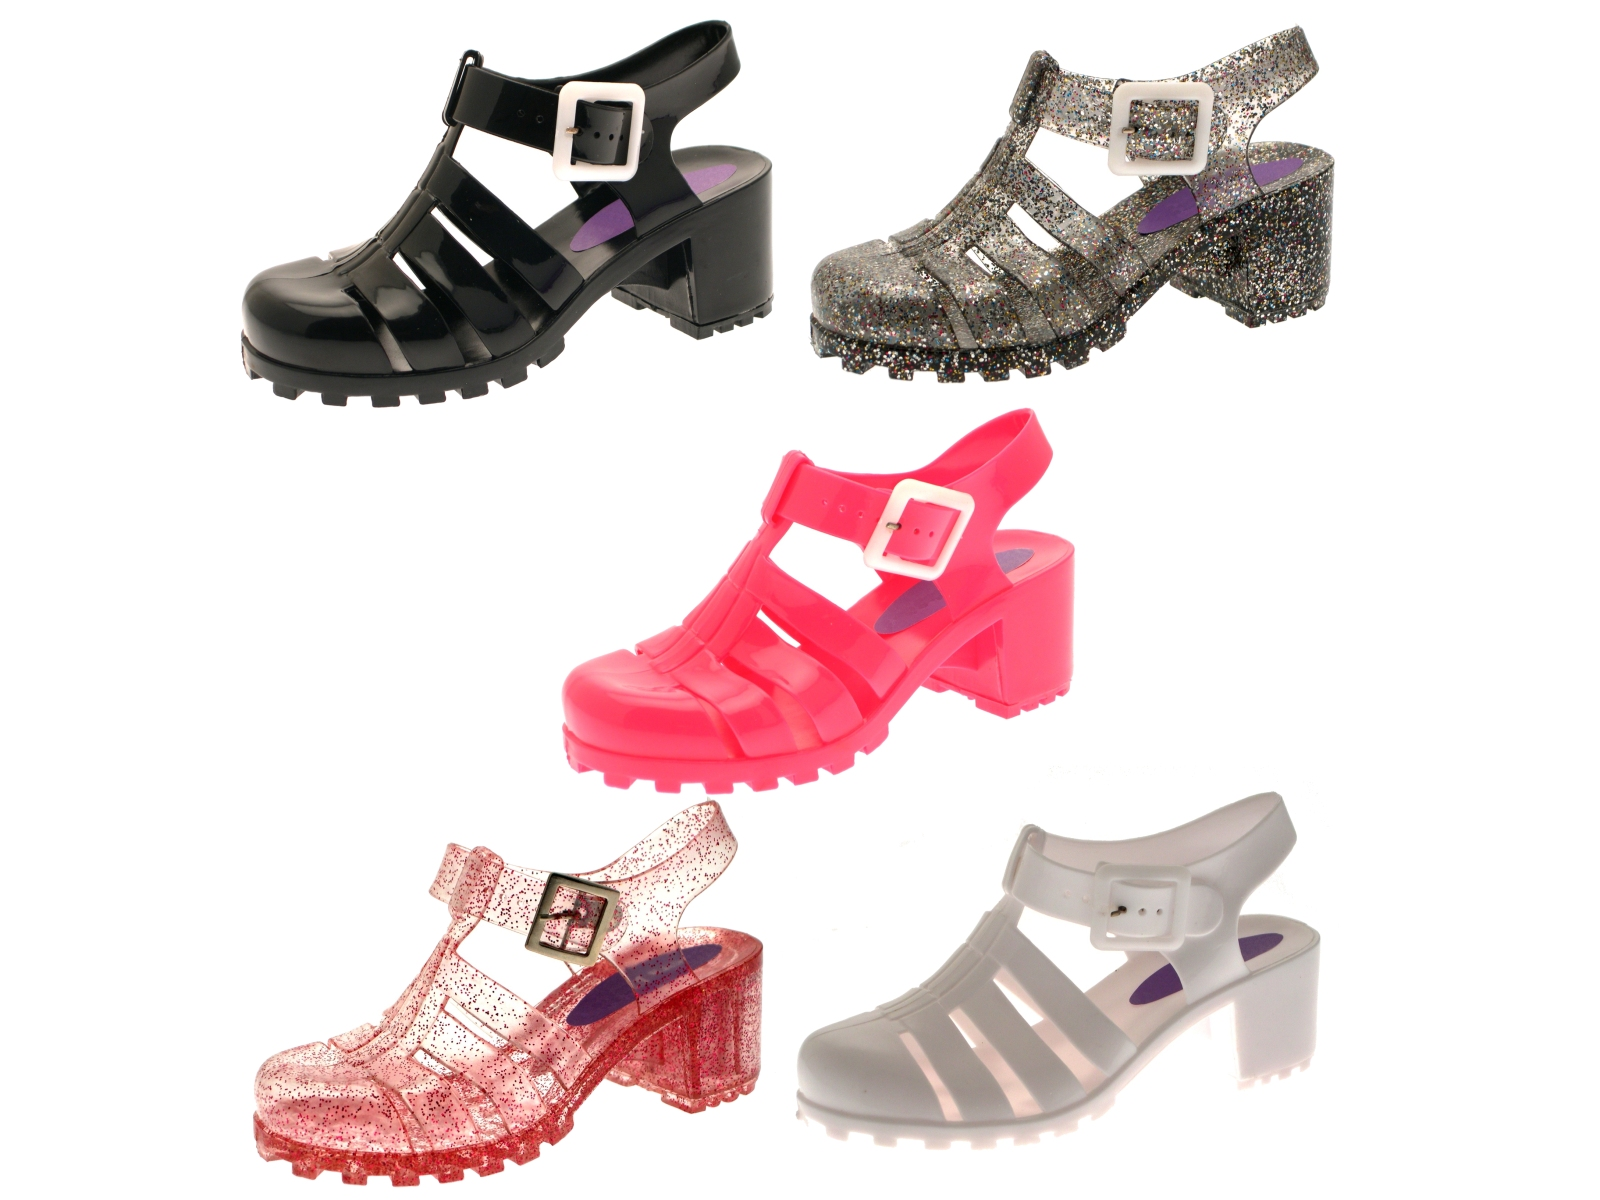 Infant Sandals: Baby Jelly Sandals Size 2